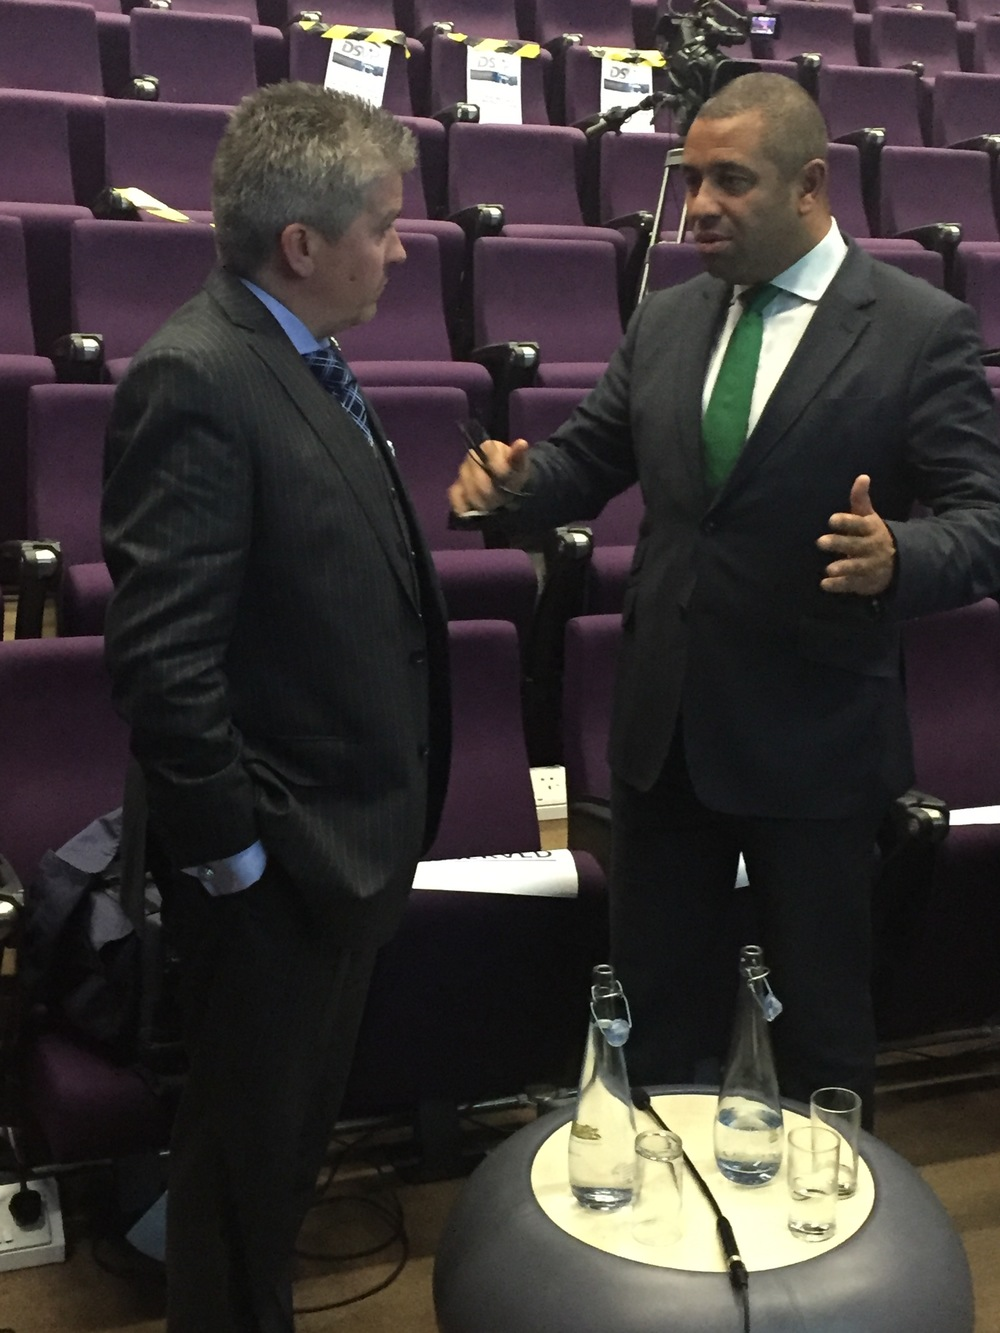 David Bell with James Cleverly MP